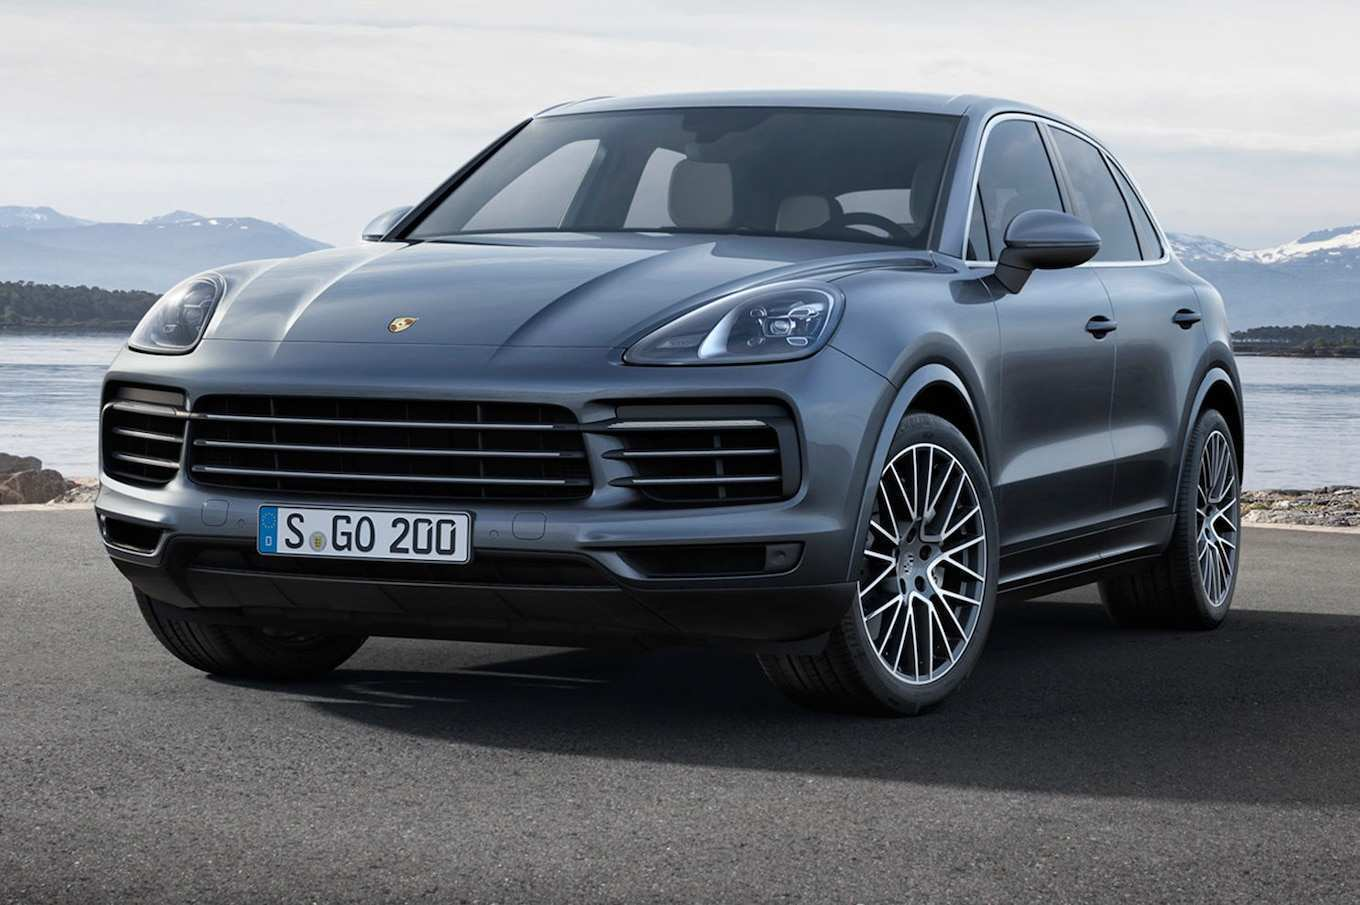 36 Best Review 2019 Porsche Cayenne First Look Exterior and Interior for 2019 Porsche Cayenne First Look